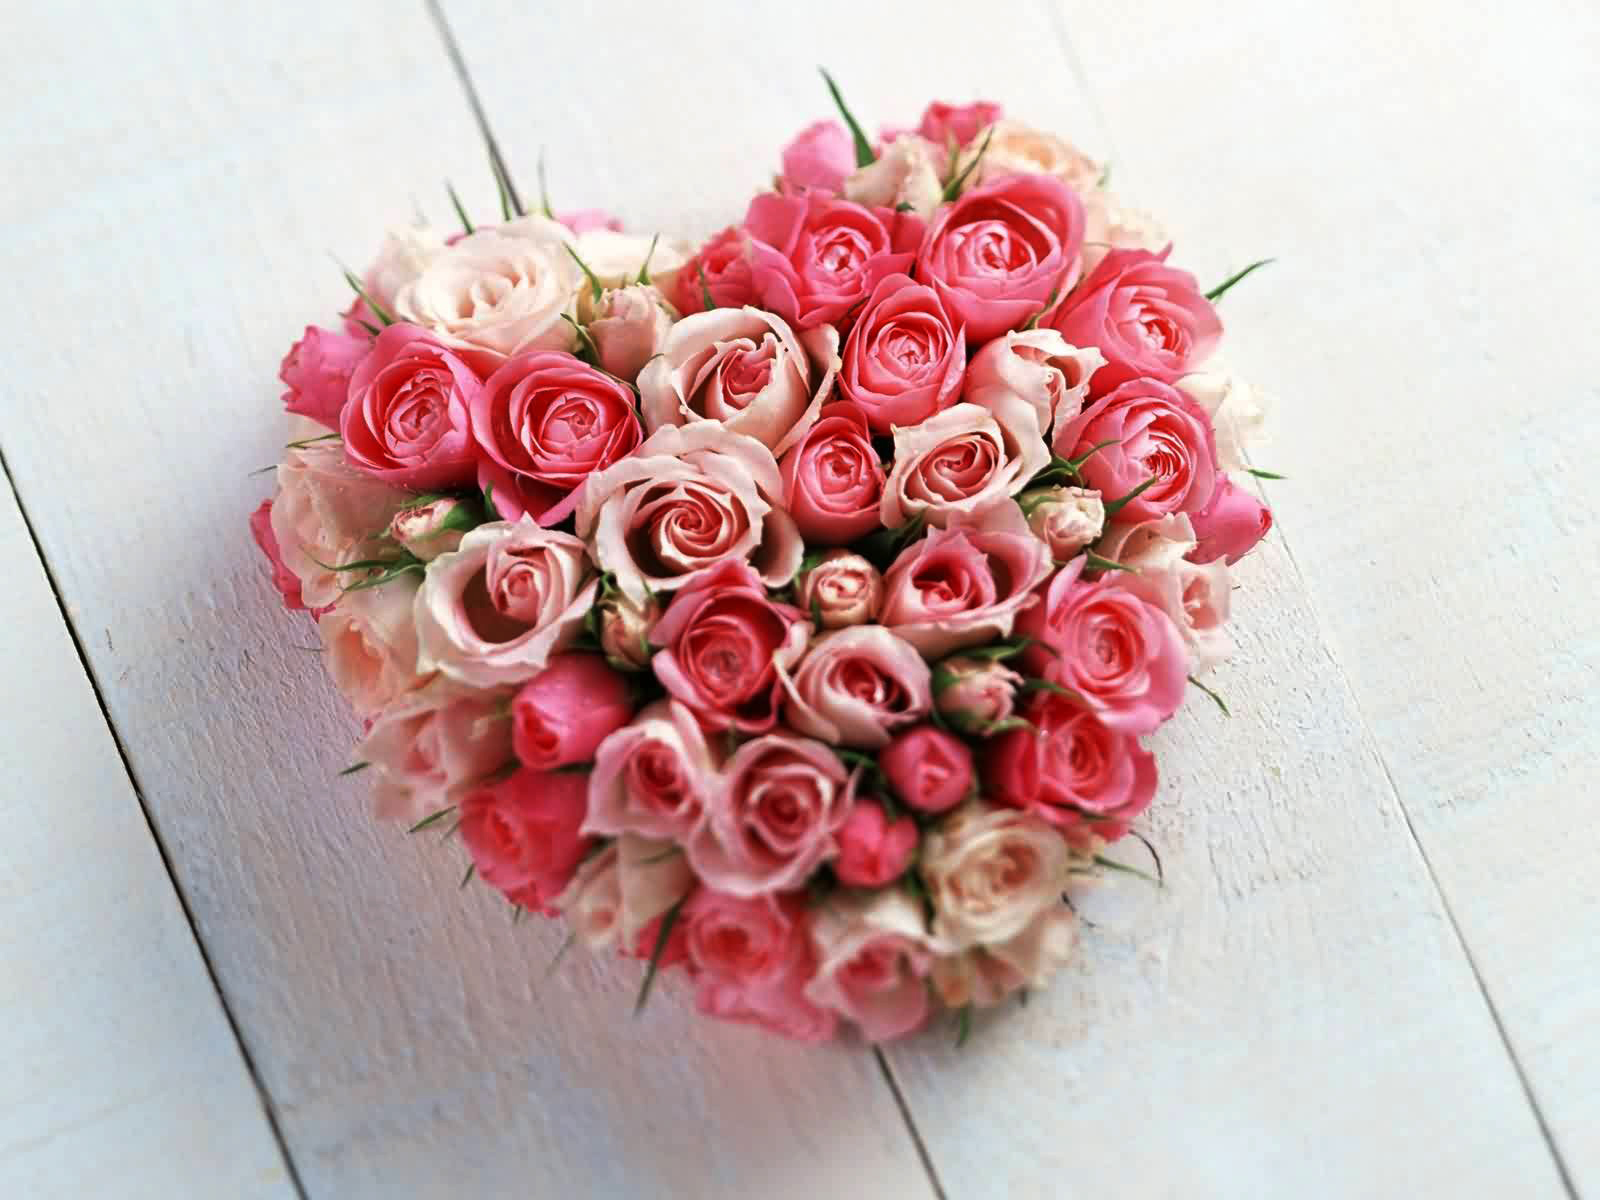 beautiful lovely pink and white roses boquet for you my lovely sweetheart on this valentine